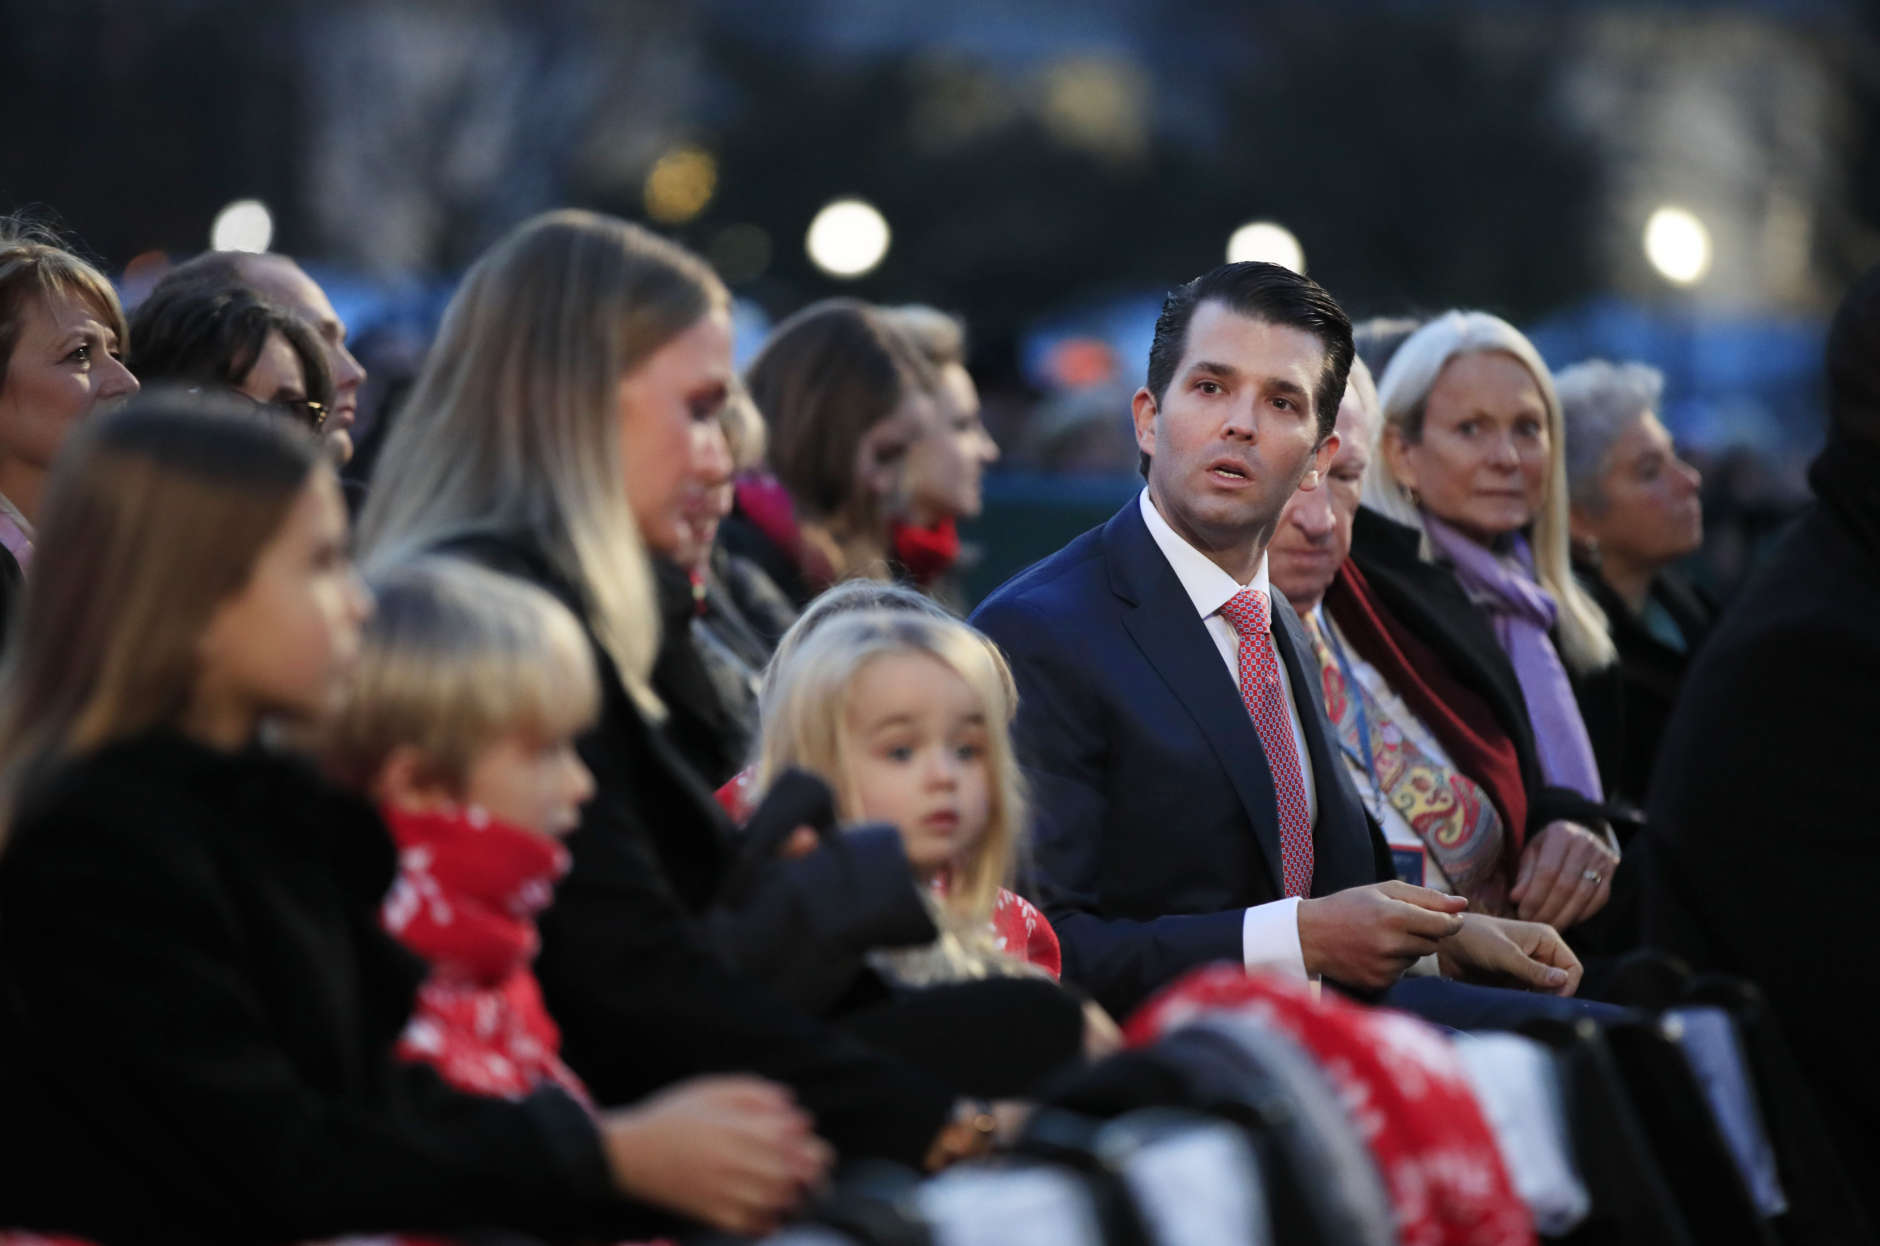 Donald Trump Jr., his wife Vanessa Trump, and their family watch performances during the National Christmas Tree lighting ceremony at the Ellipse near the White House in Washington, Thursday, Nov. 30, 2017. (AP Photo/Manuel Balce Ceneta)